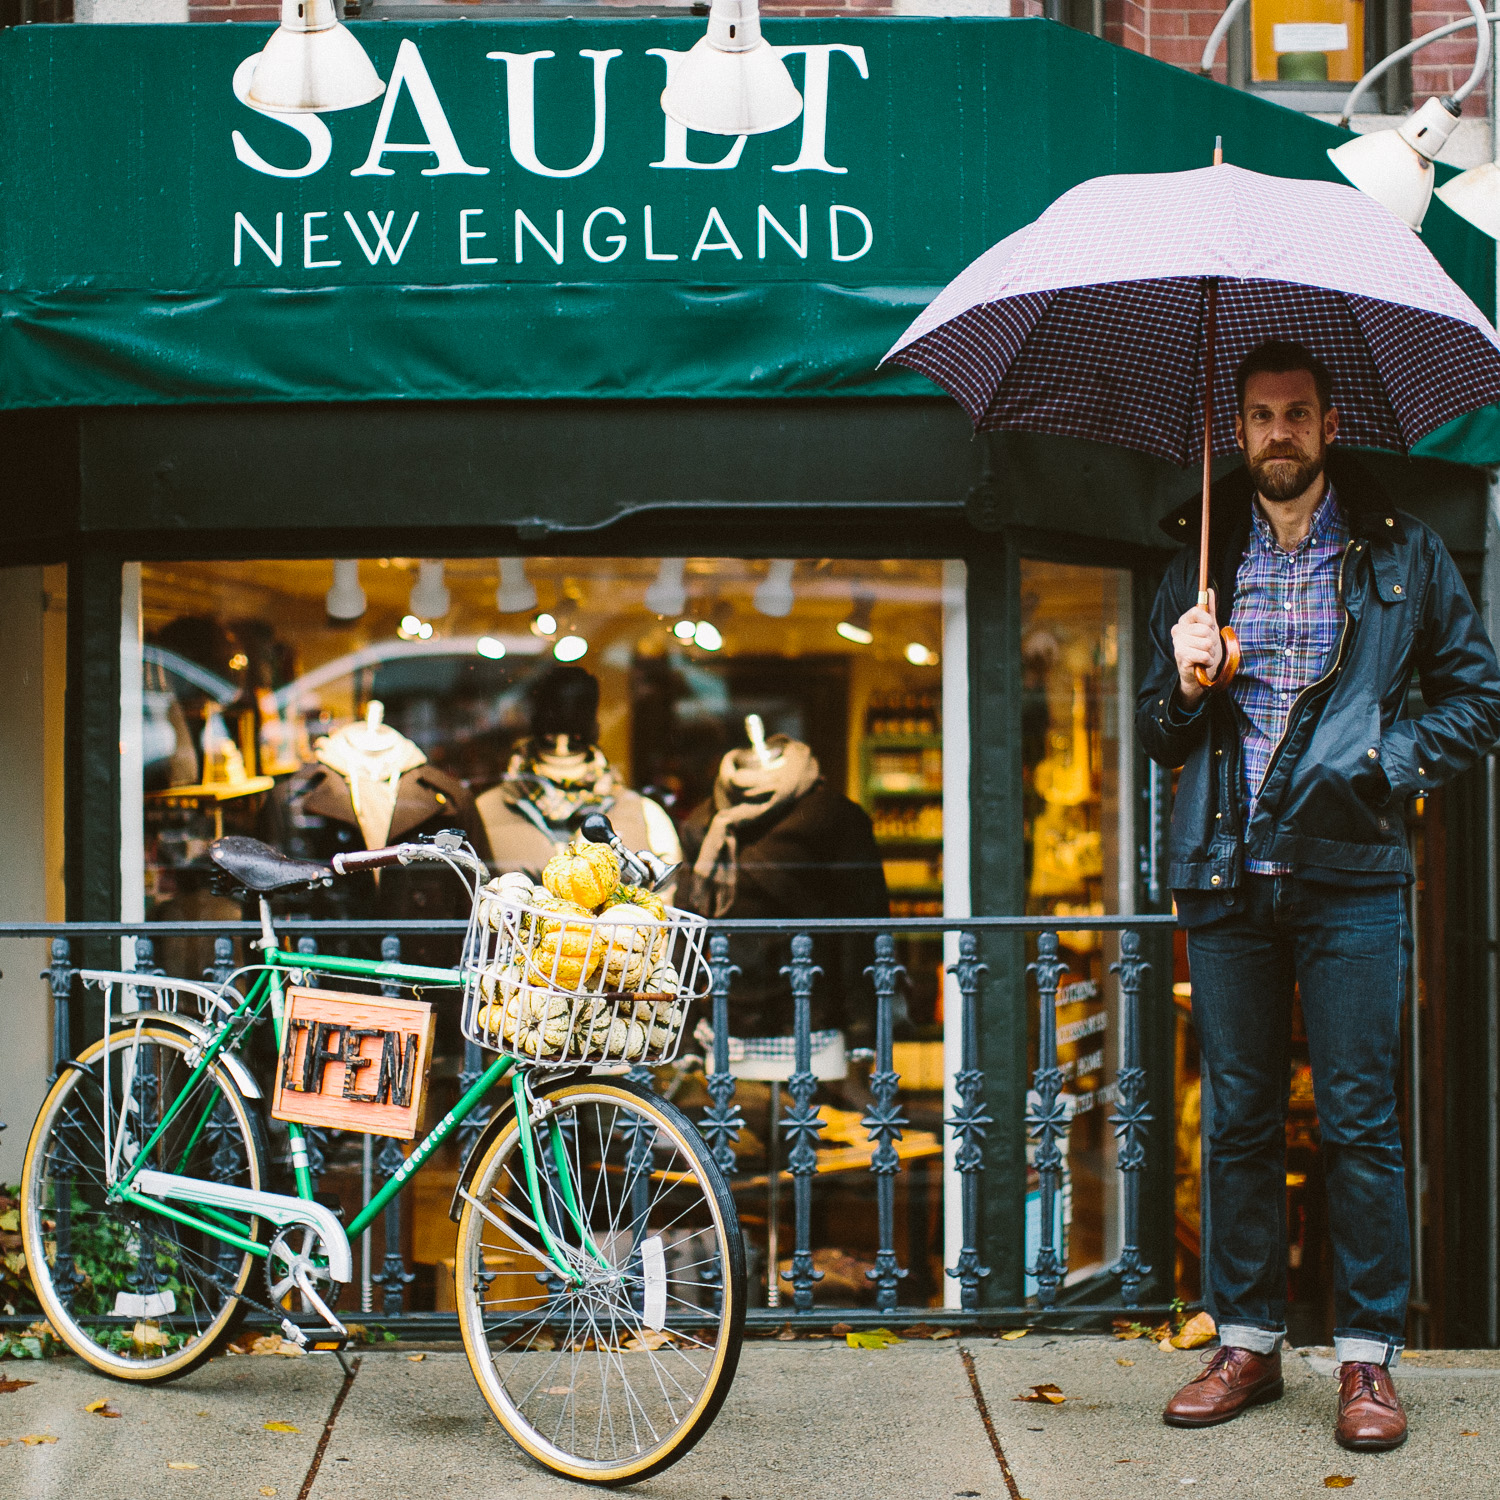 Sault New England for Small Business Saturday by American Express